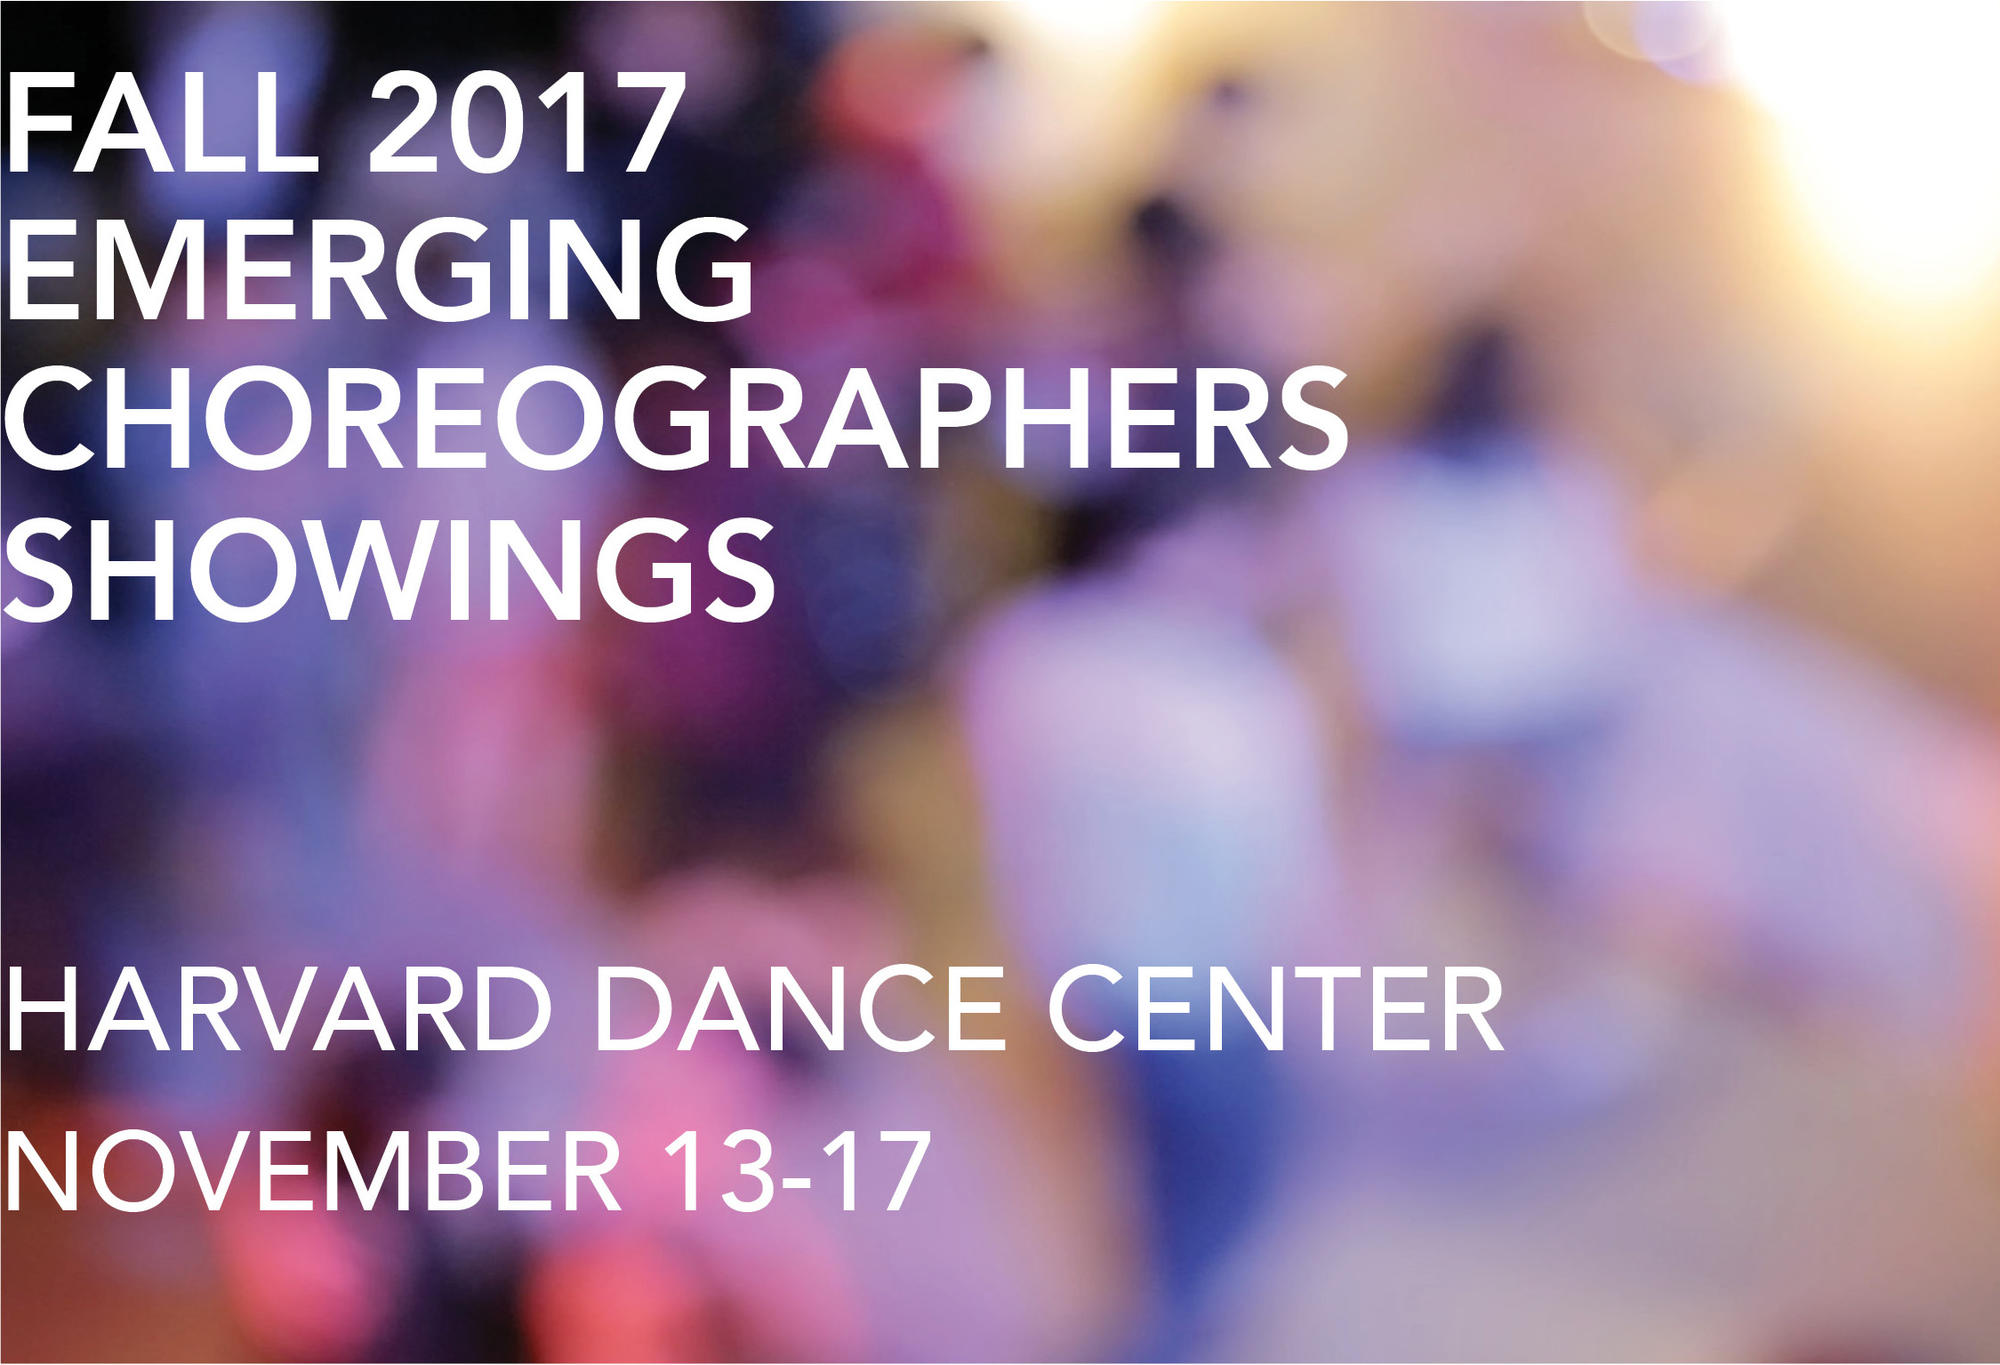 Fall 2017 Emerging Choreographers Showings